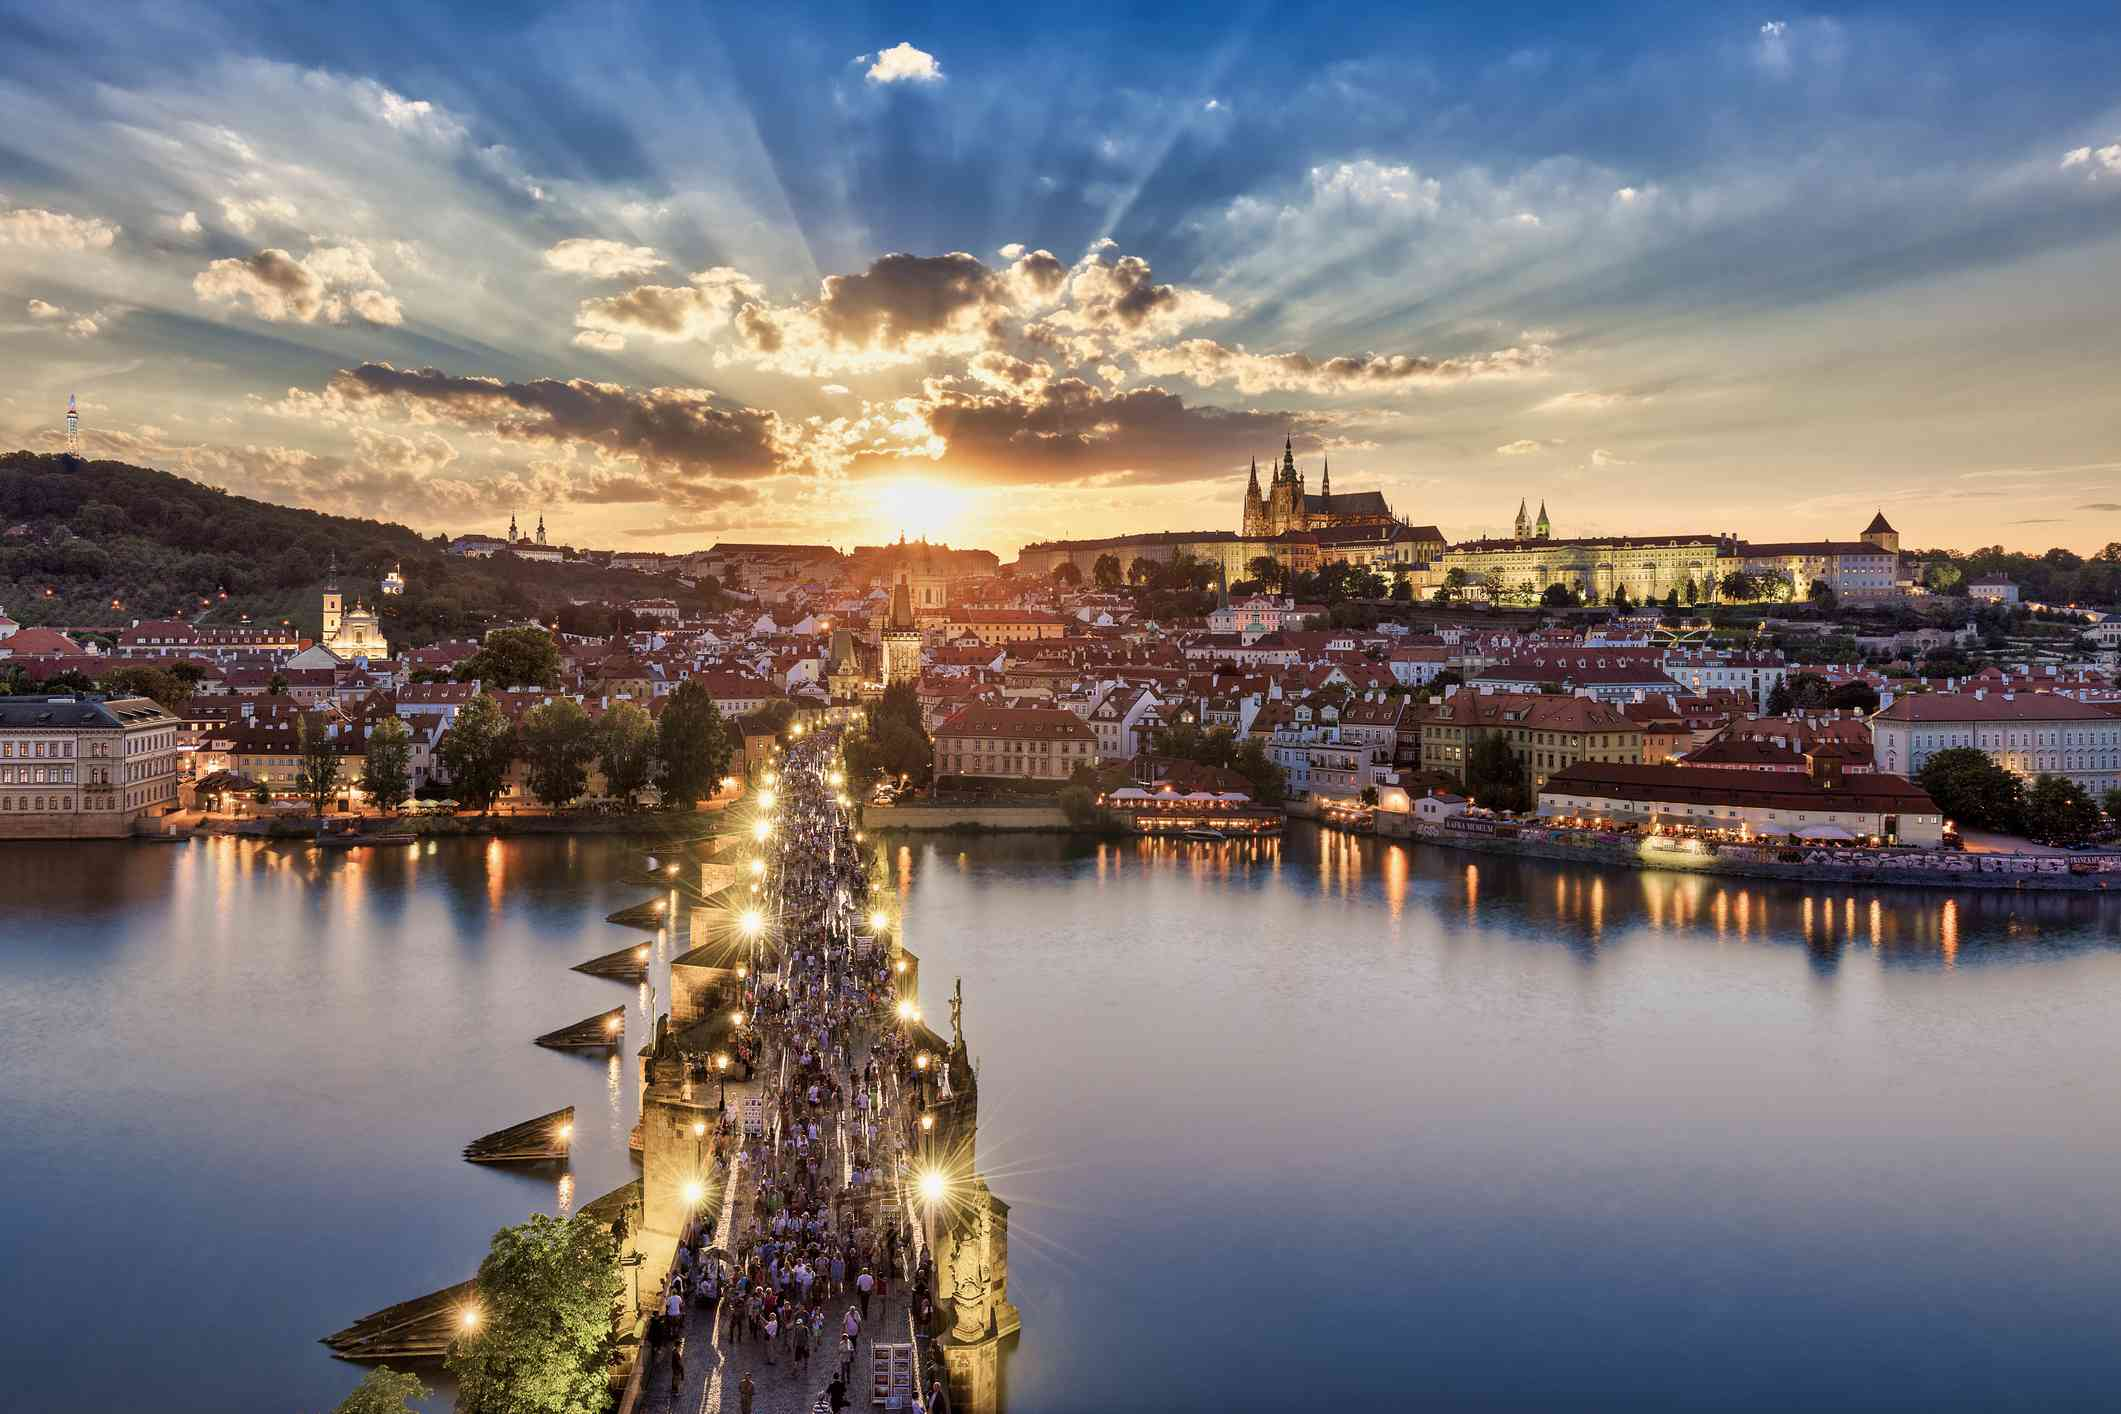 Sunlight Streaming on Charles Bridge, Castle District, Royal Palace and St. Vitus Cathedral, Prague, Bohemia, Czech Republic